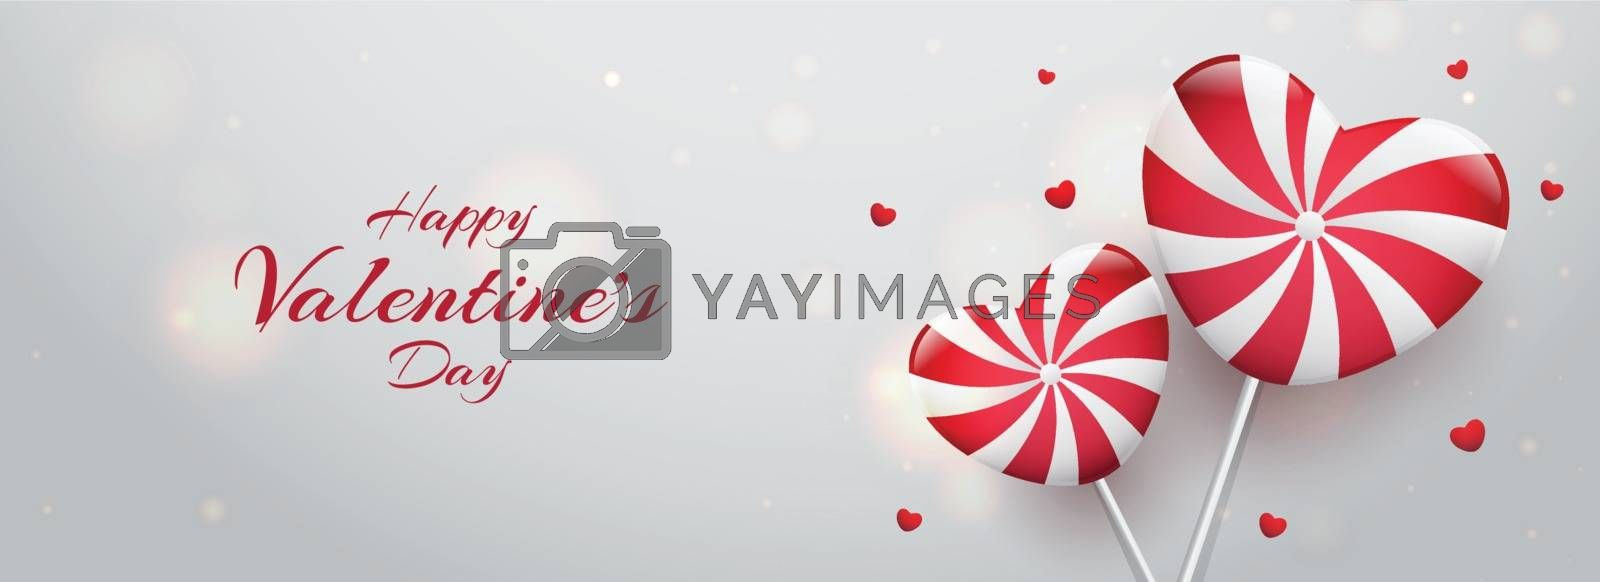 Heart shape candies illustration on glossy bokeh background for Valentine's Day header or banner design.